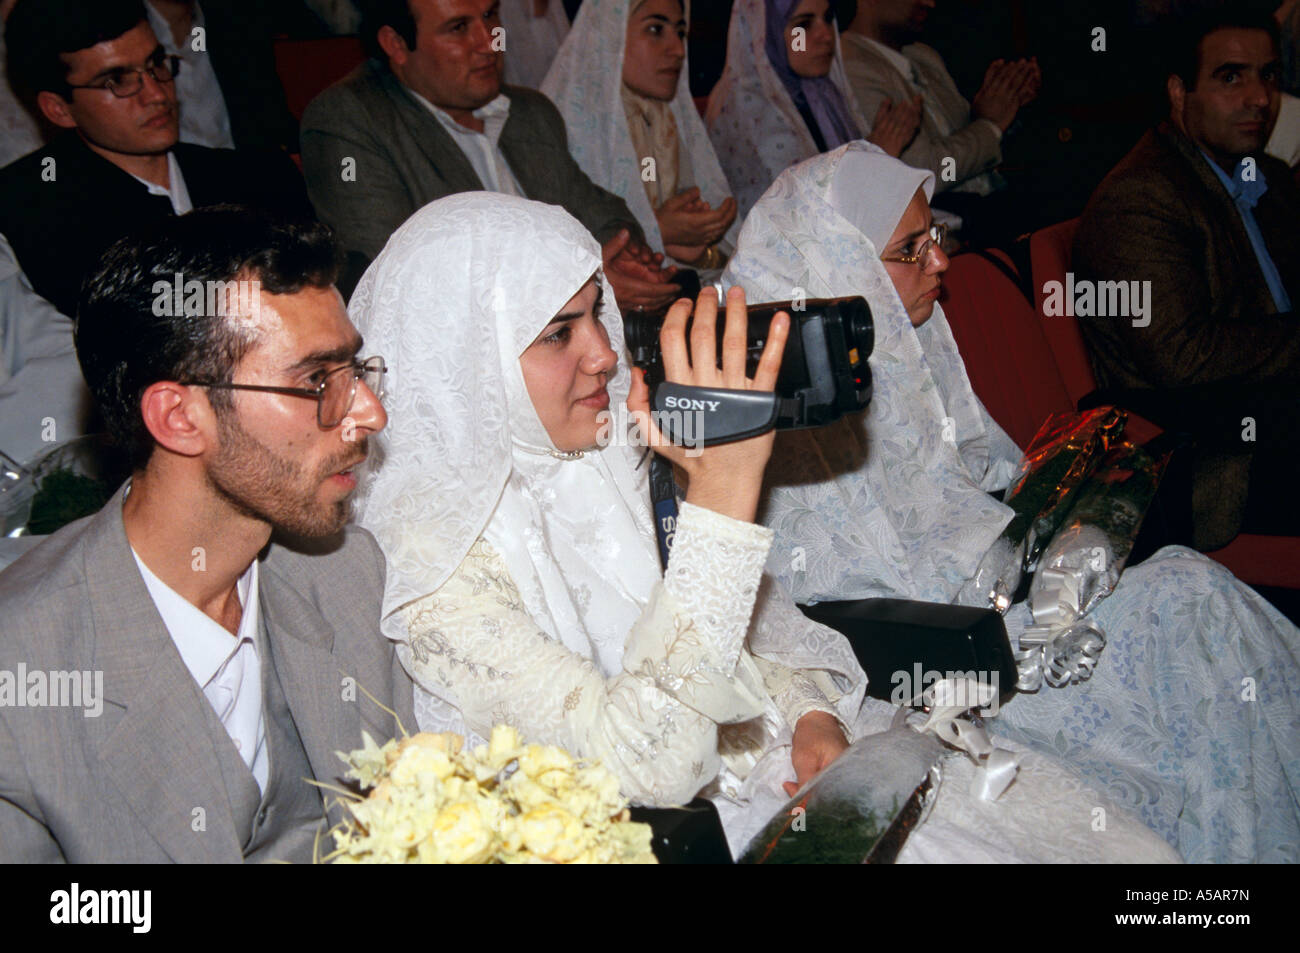 A mass wedding in Tehran Iran - Stock Image